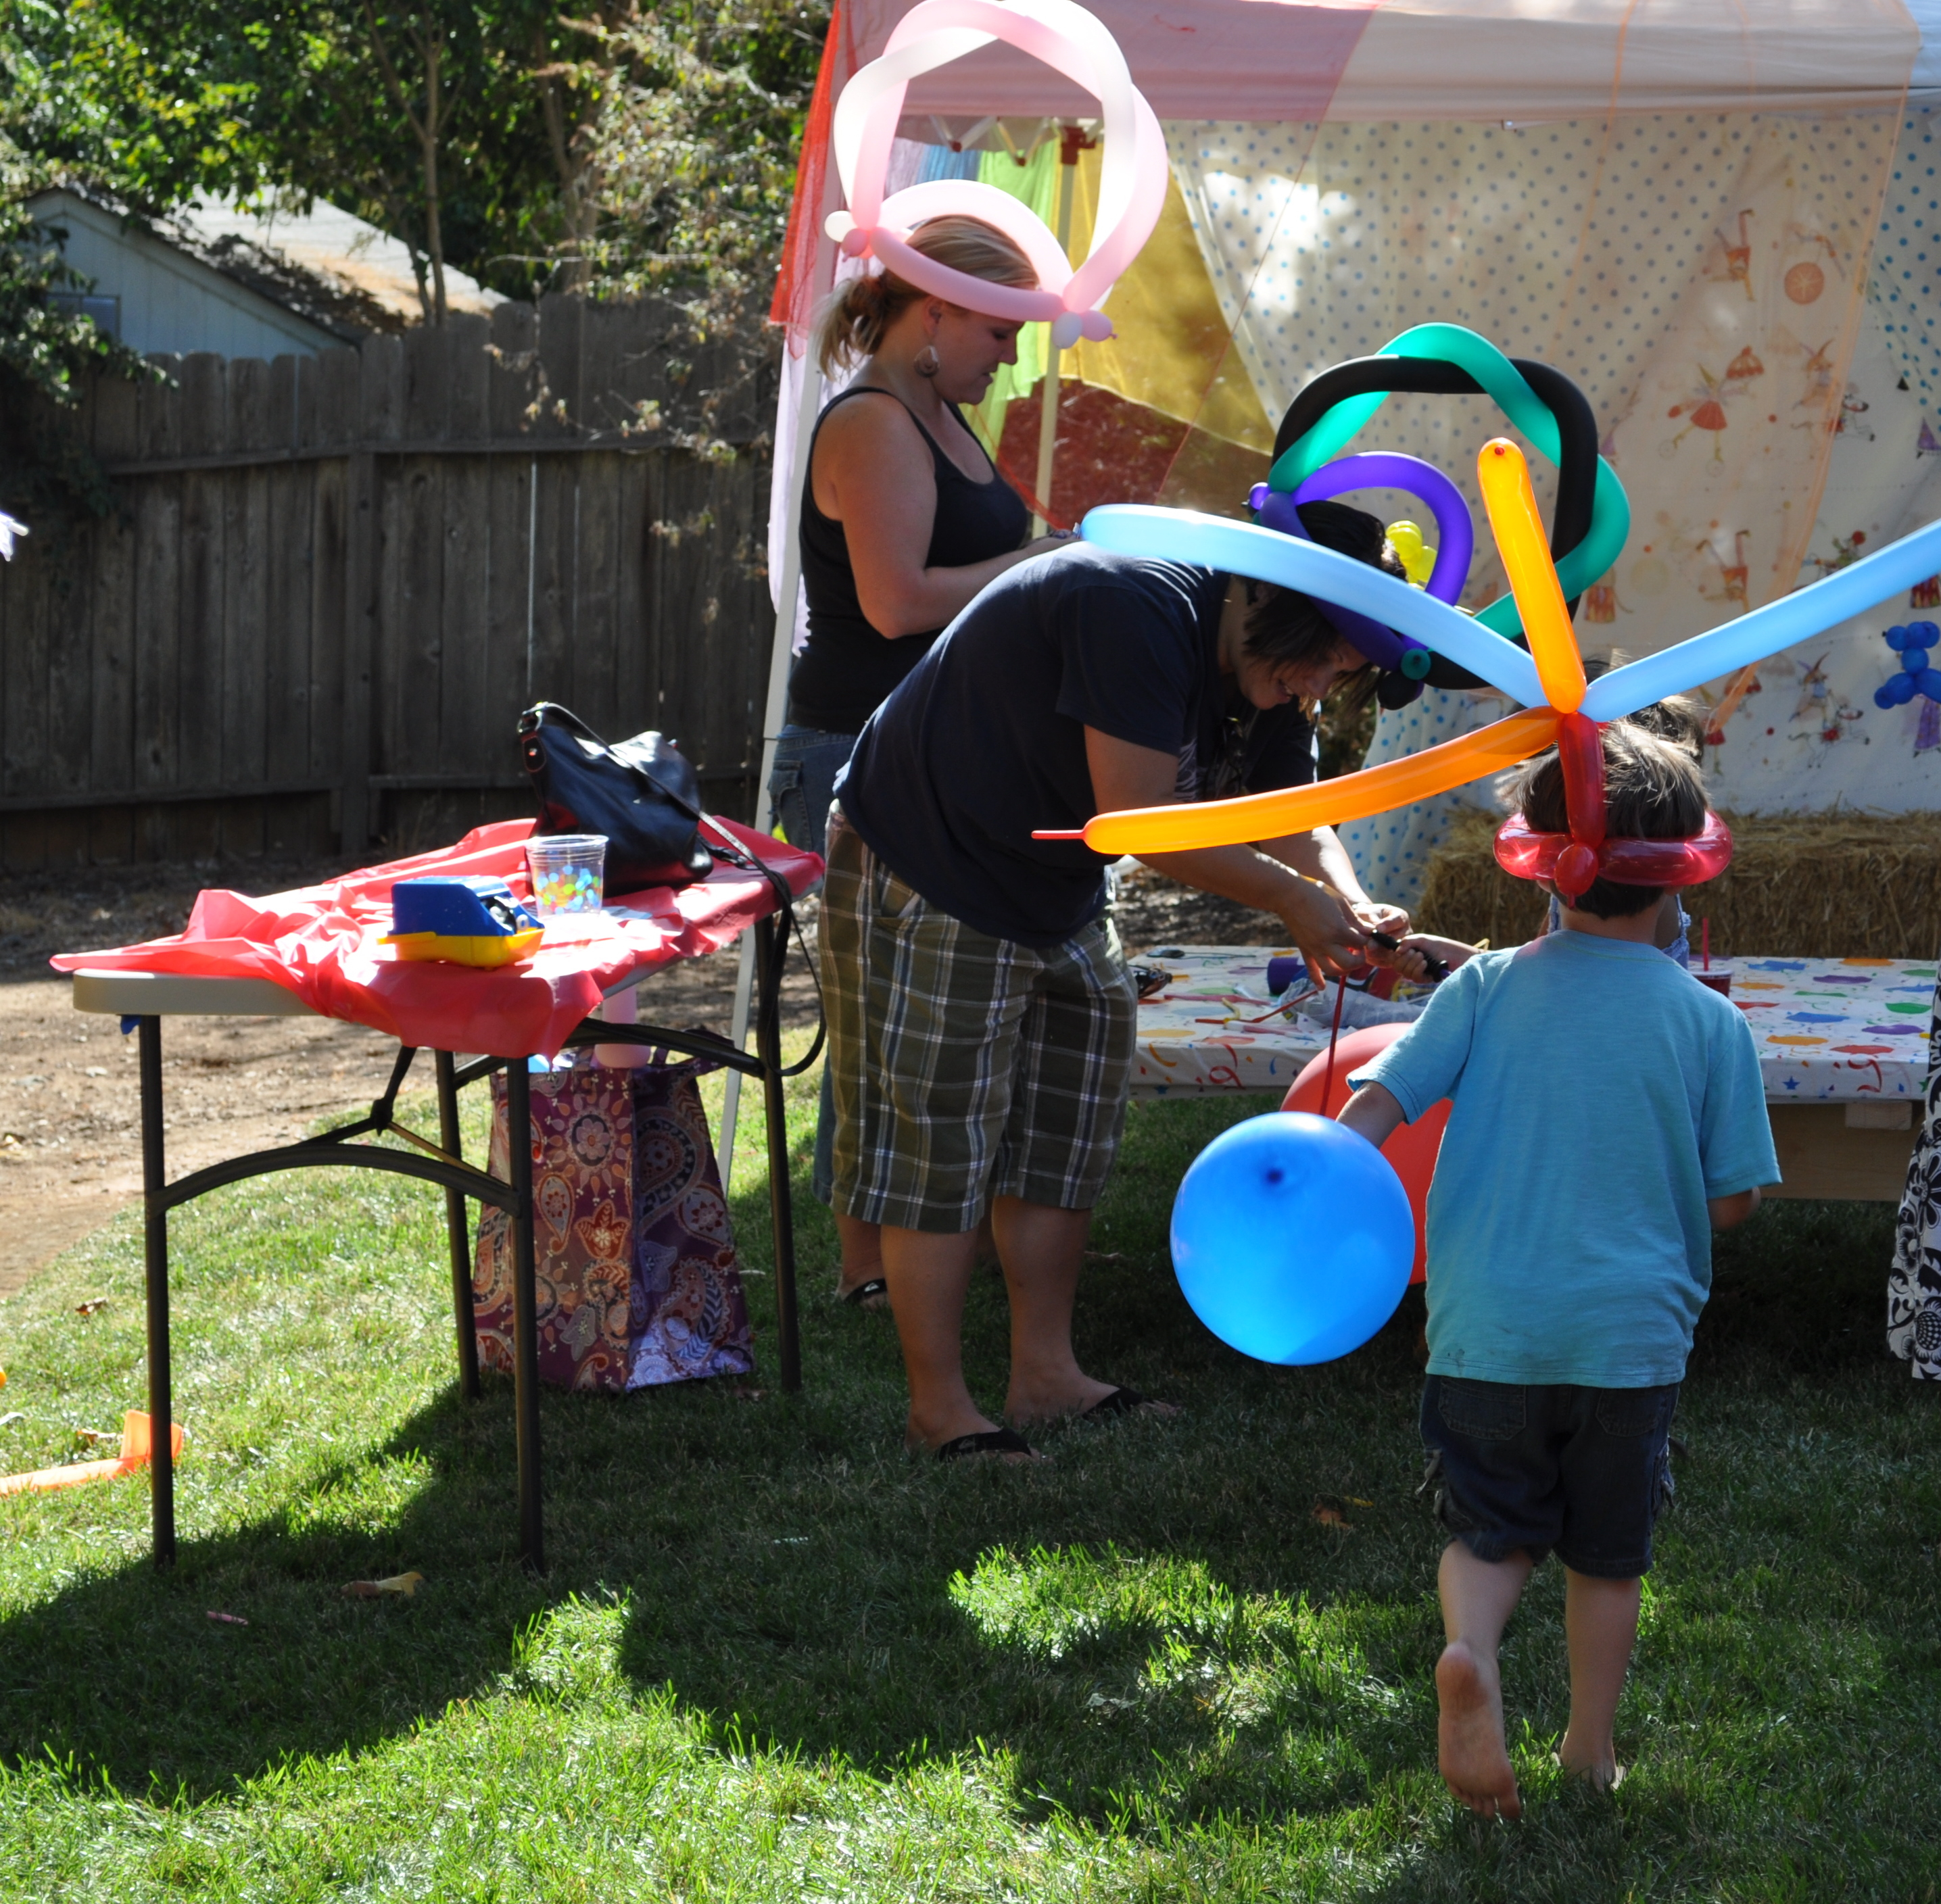 Modular Party On A Budget: Backyard Carnival Party | Catch My Party in Backyard Carnival